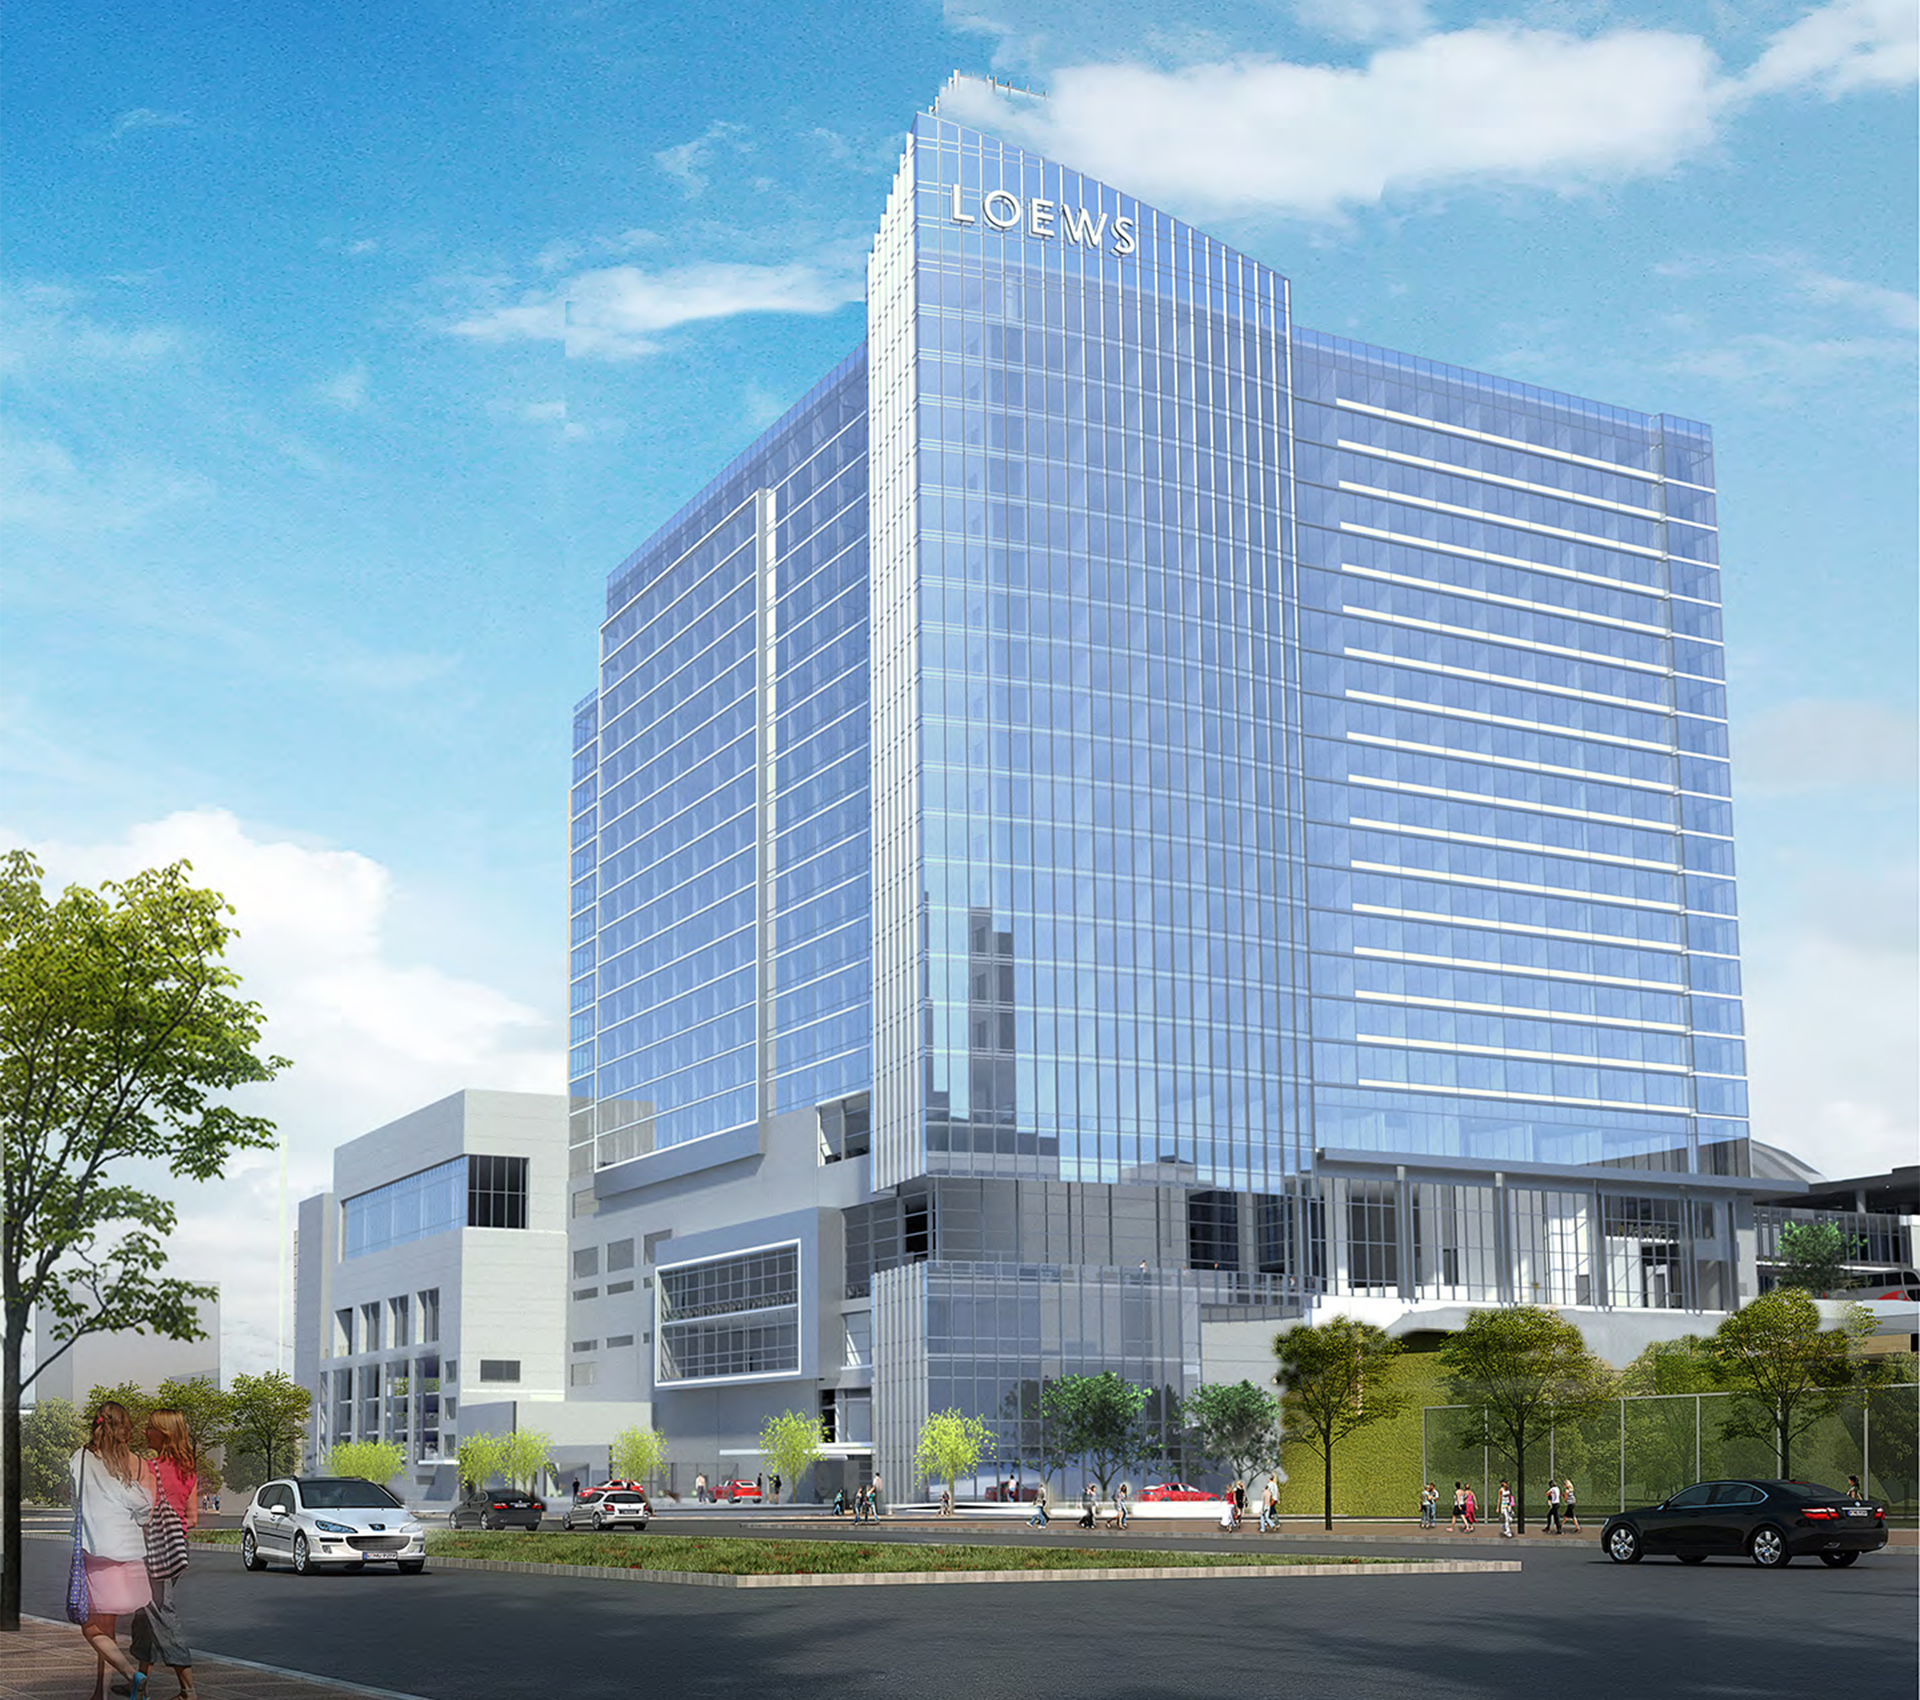 Loews Hotels Has Agreed To Operate The 800 Room Convention Hotel That Is Scheduled Breakground In October